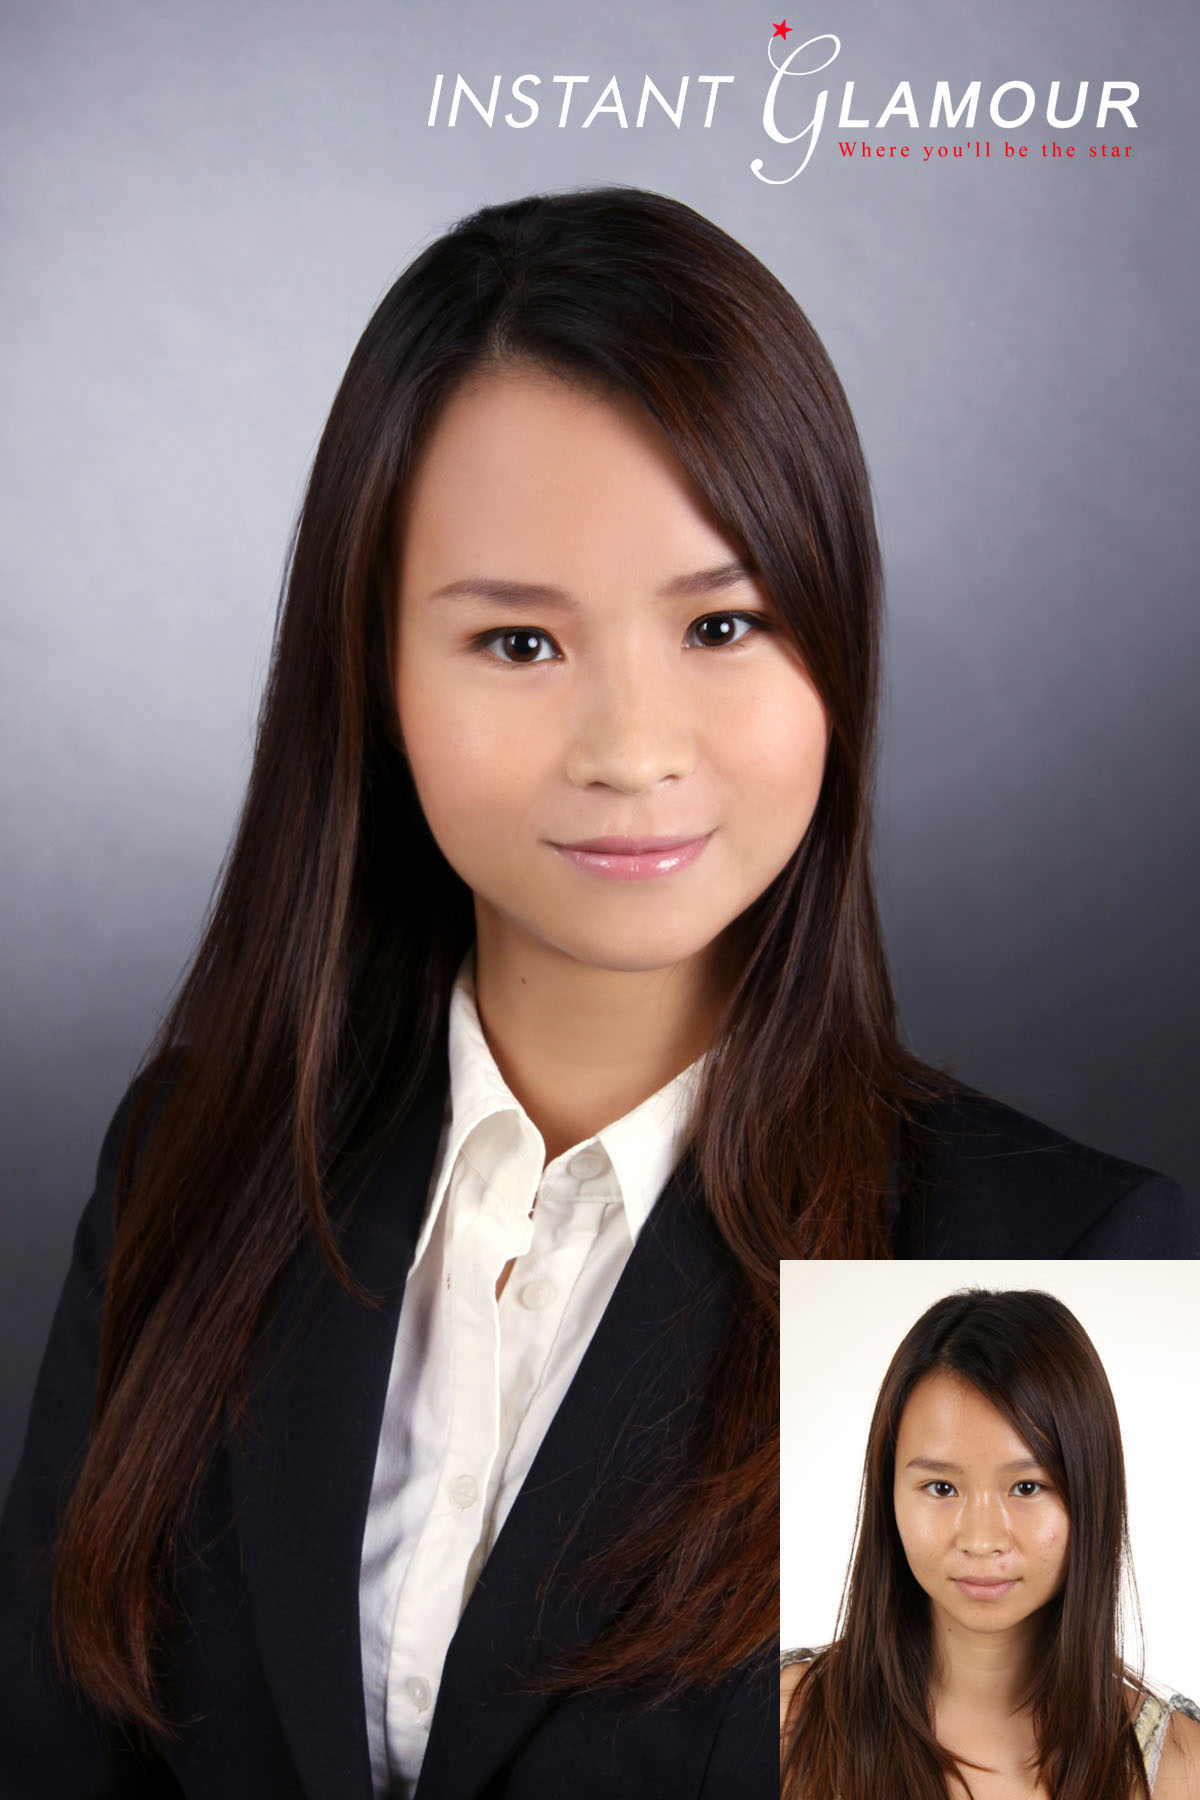 corporate photo package for professional